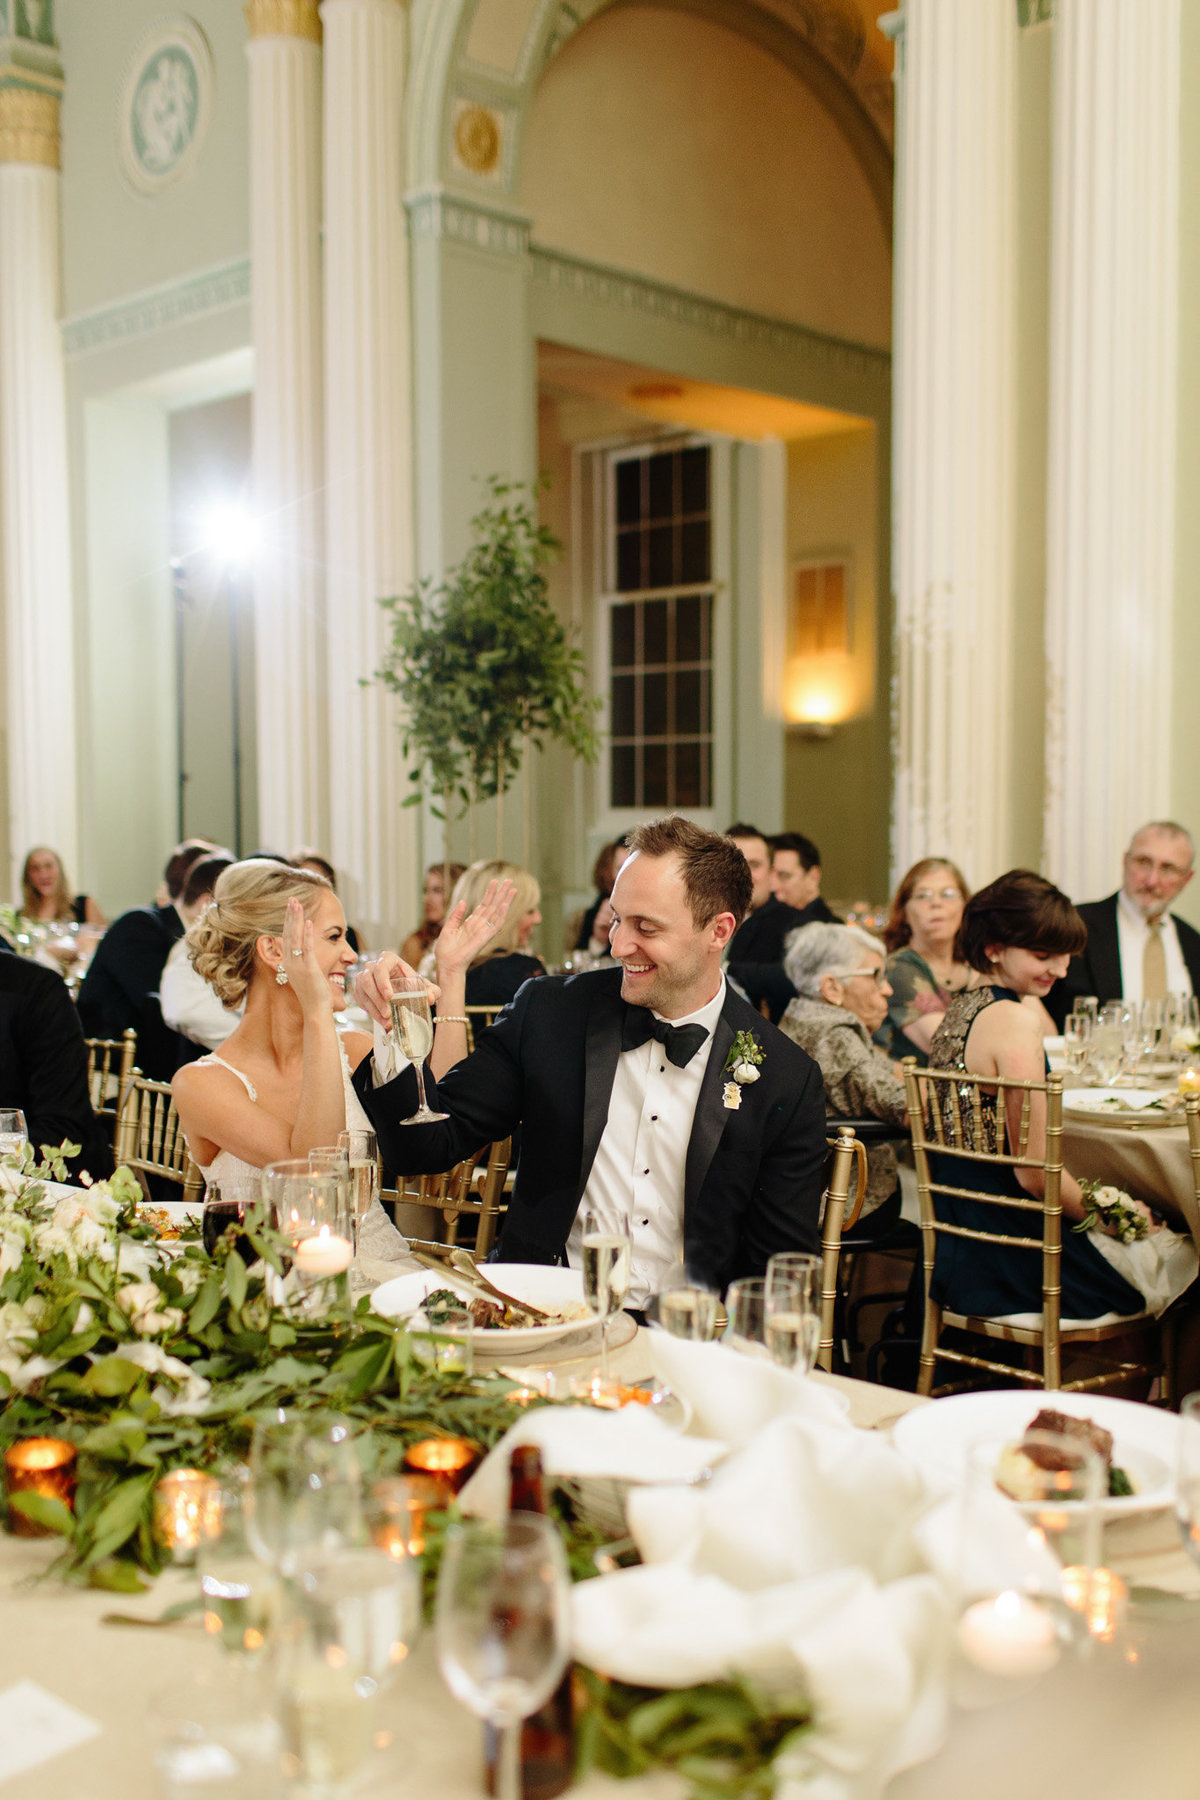 Georgian Ballroom reception celebration.  Real wedding moment captured by Rebecca Cerasani.